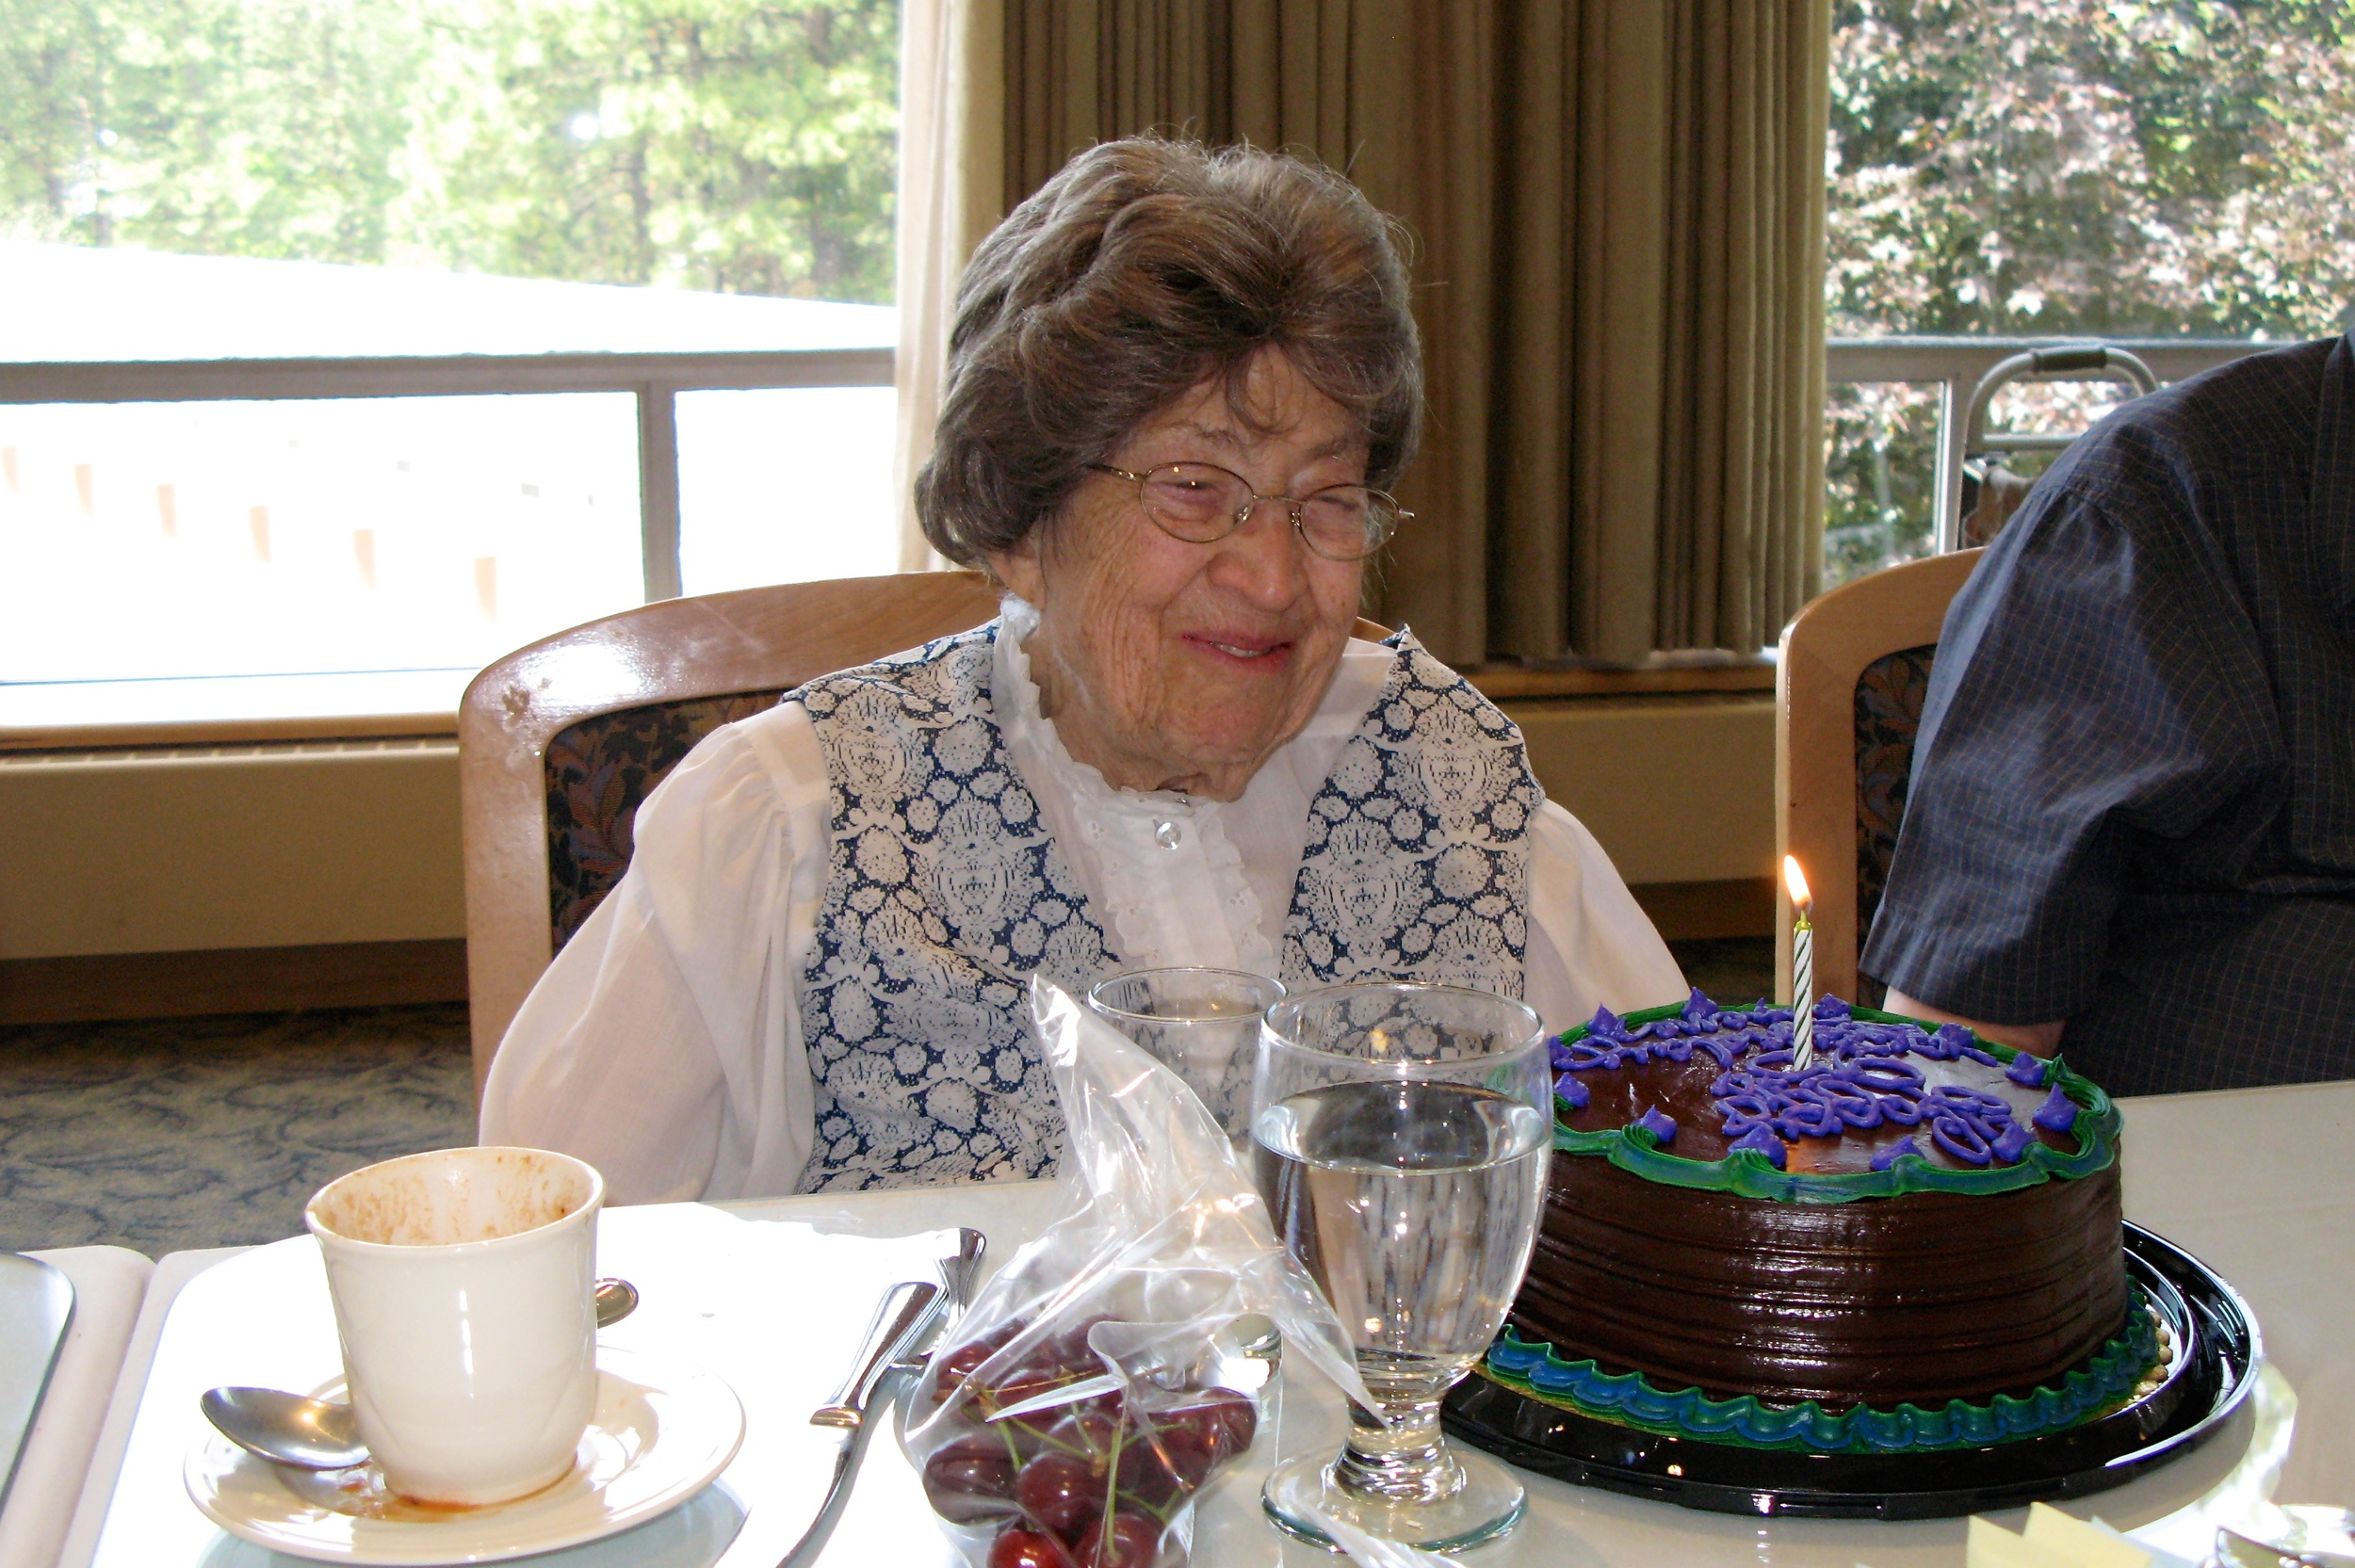 Celebrating Irene's 95th birthday (2009)